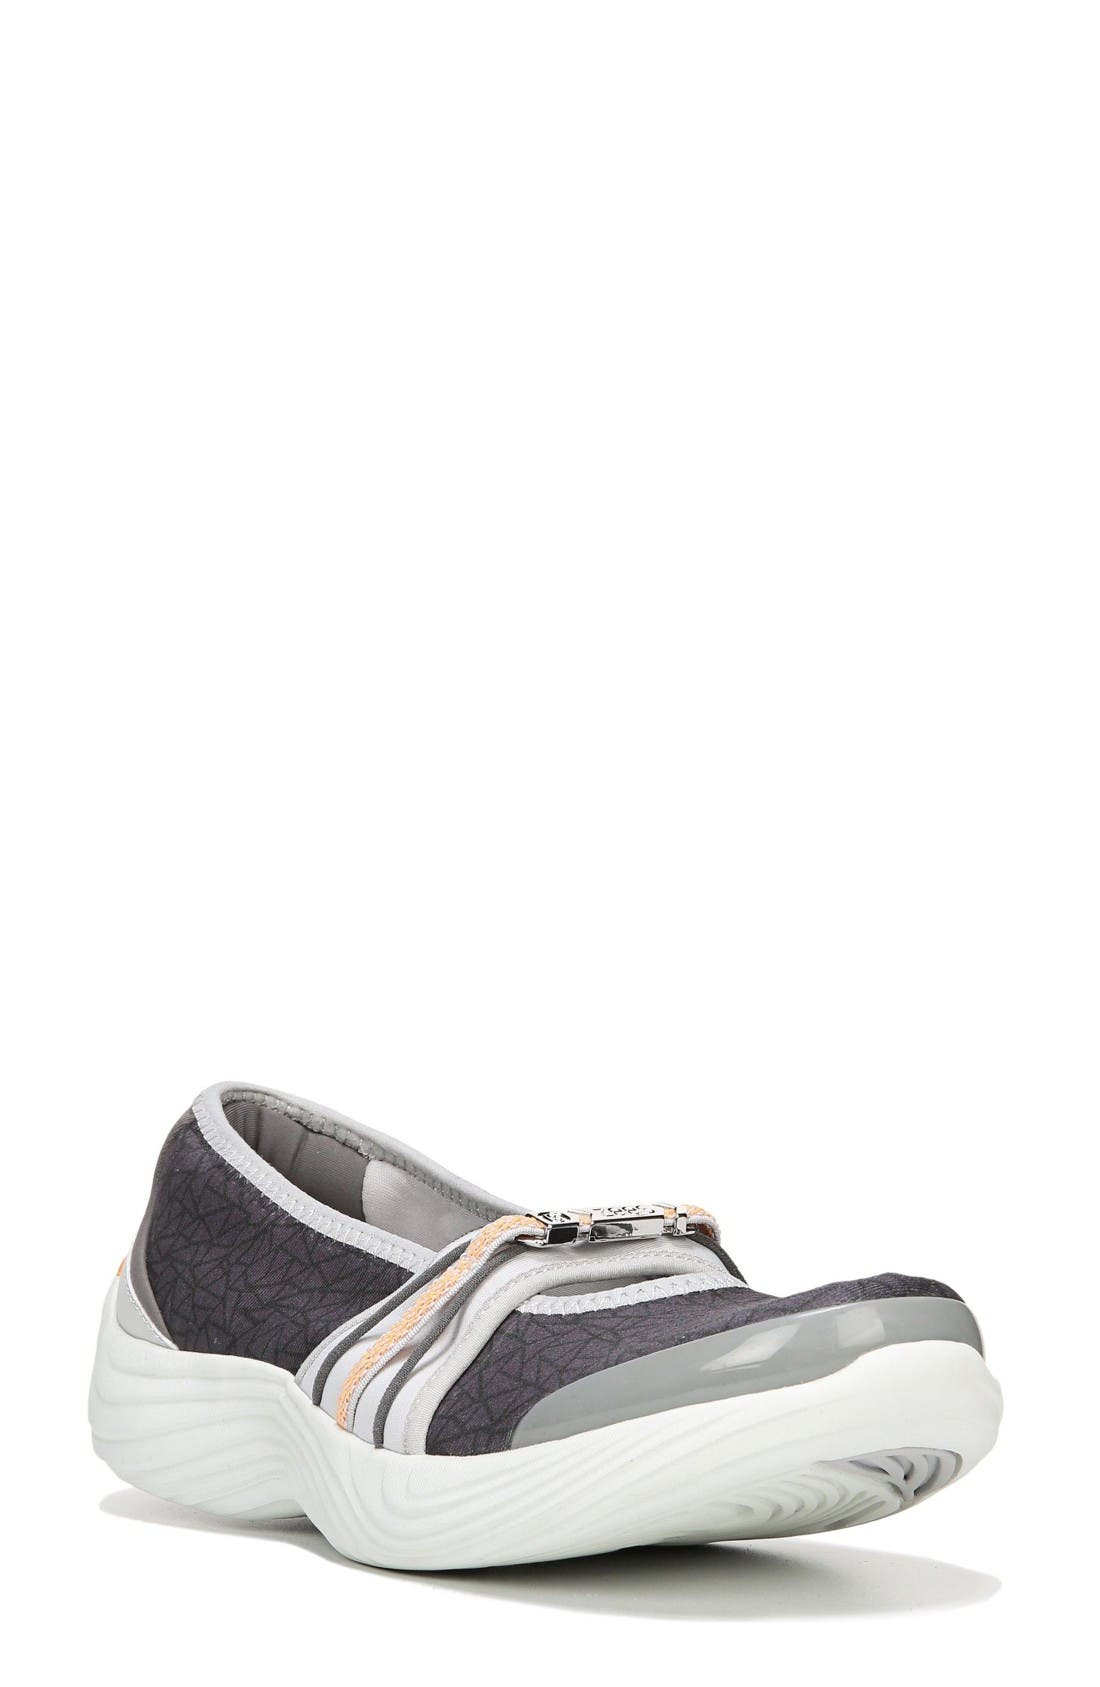 BZEES Twinkle Slip-On Sneaker